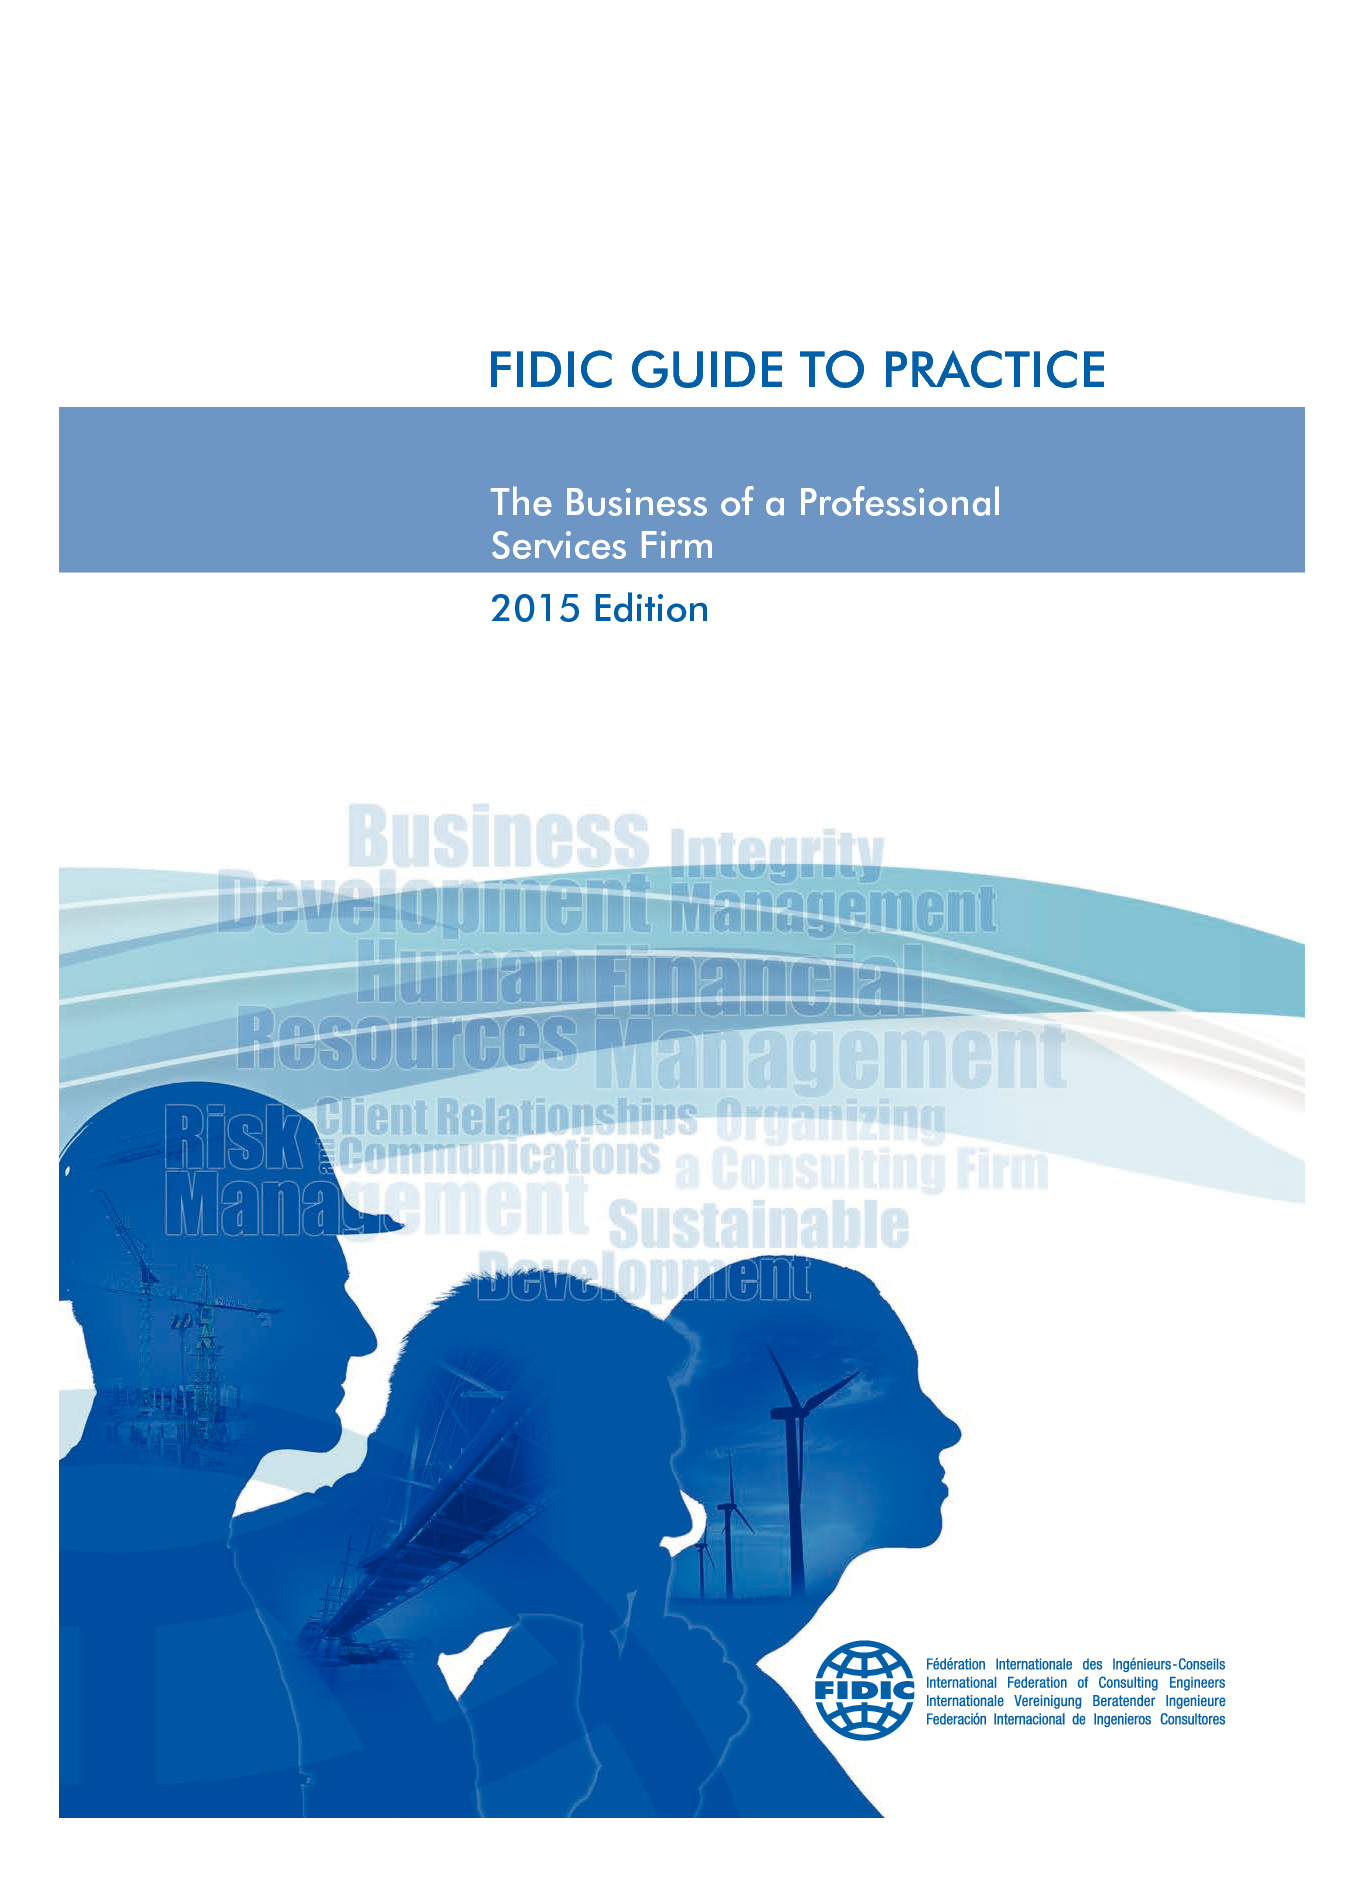 FIDIC Guide to Practice, The Business of a Professional Services Firm -  2015 Edition